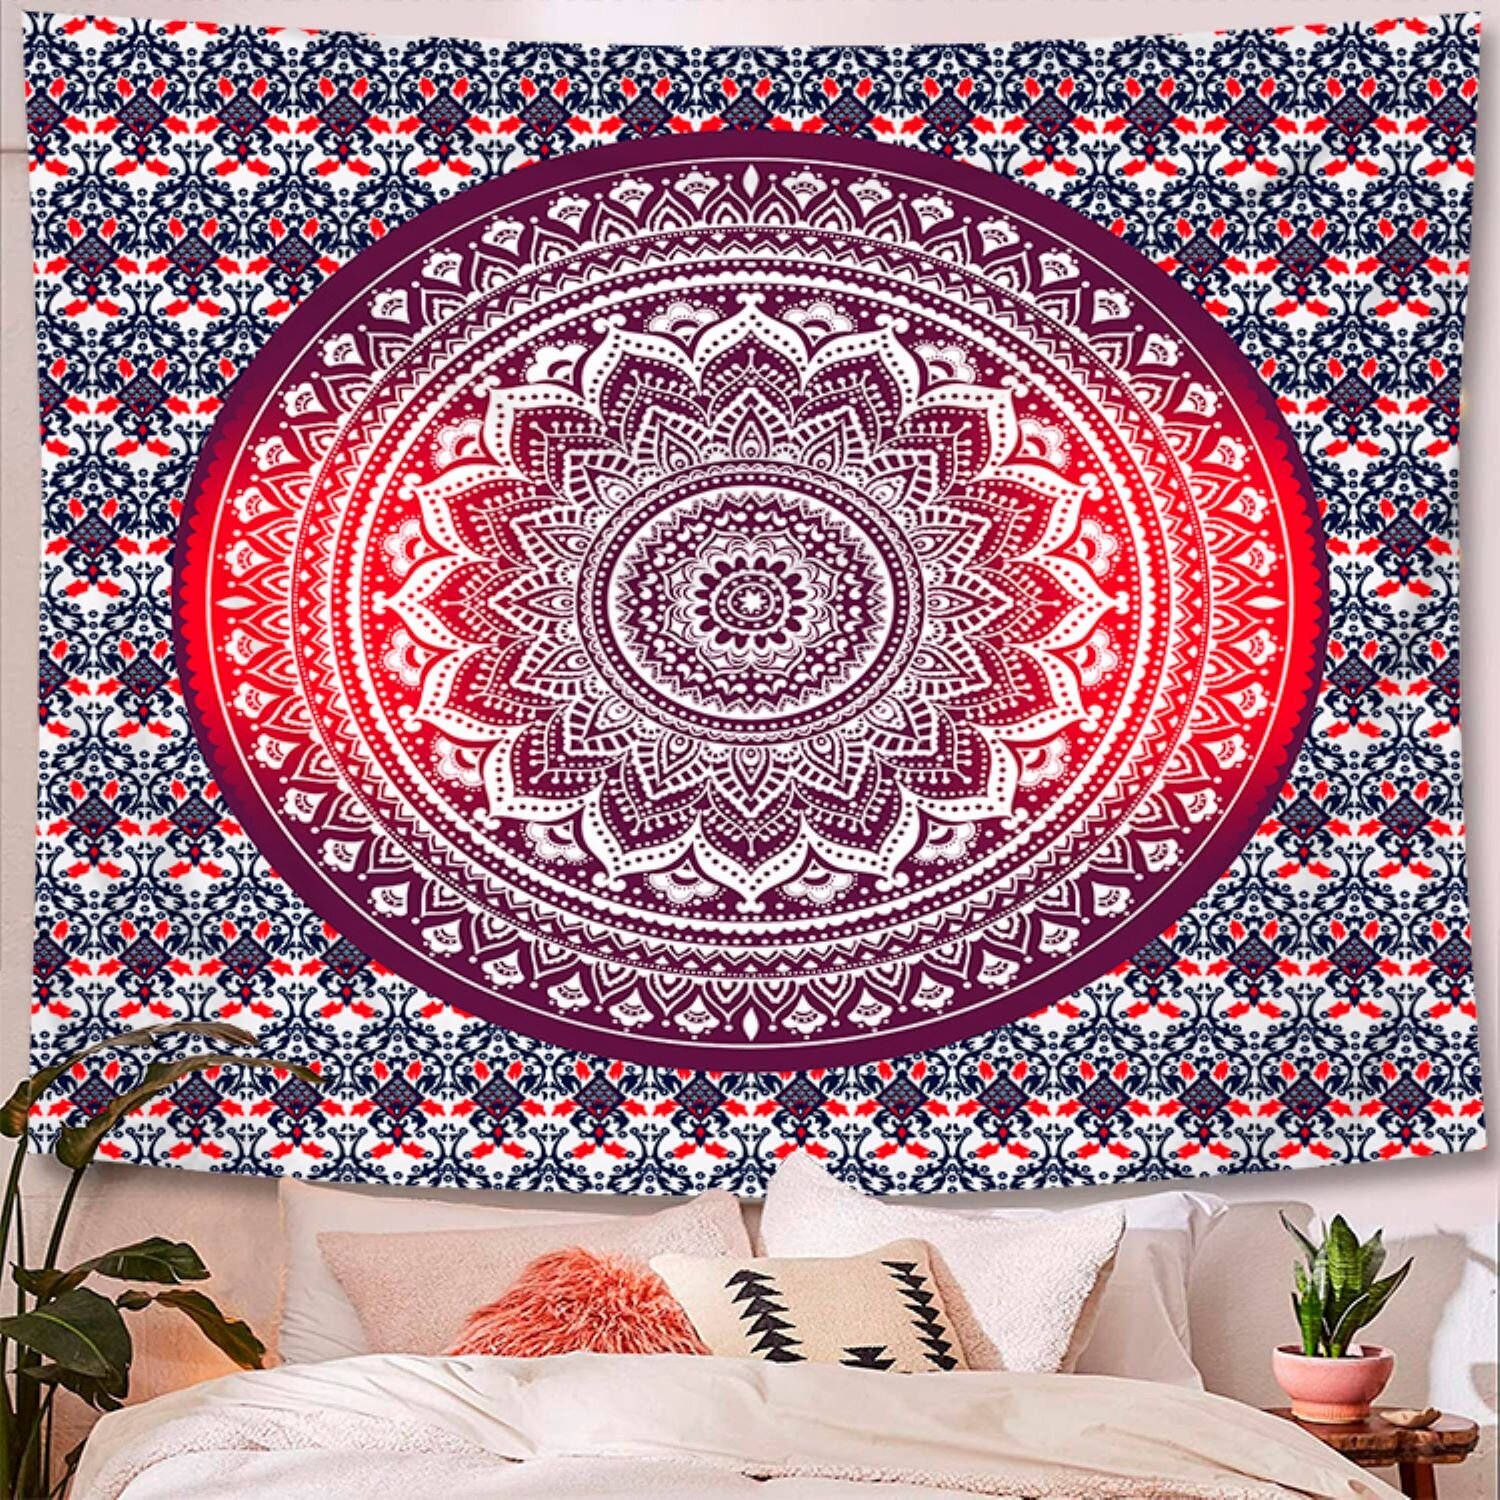 Indian Hippie Bohemian Psychedelic Peacock Mandala Polyester Tapestry With Hanging Accessories Included With Regard To Most Recent Blended Fabric Clancy Wool And Cotton Wall Hangings With Hanging Accessories Included (View 6 of 20)